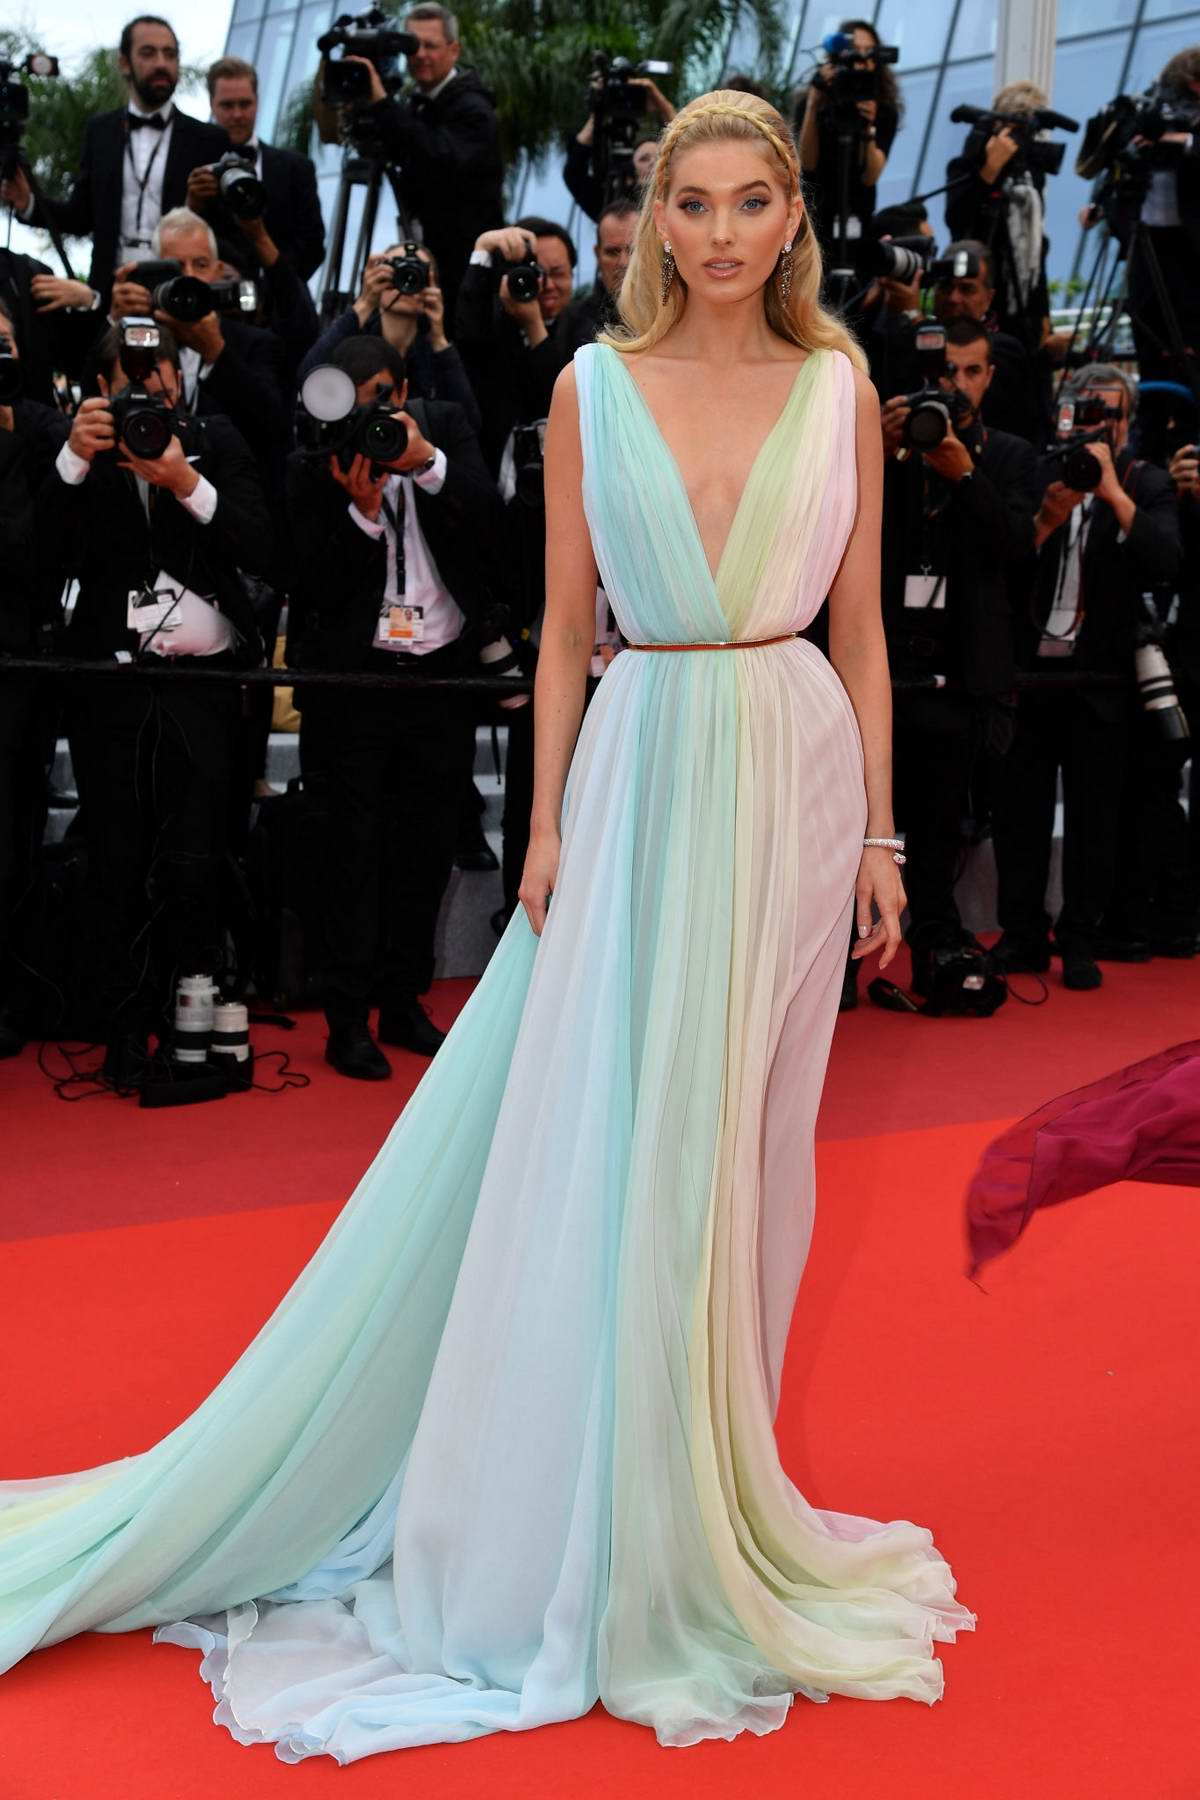 Elsa Hosk attends the screening of 'A Hidden Life' during the 72nd annual Cannes Film Festival in Cannes, France